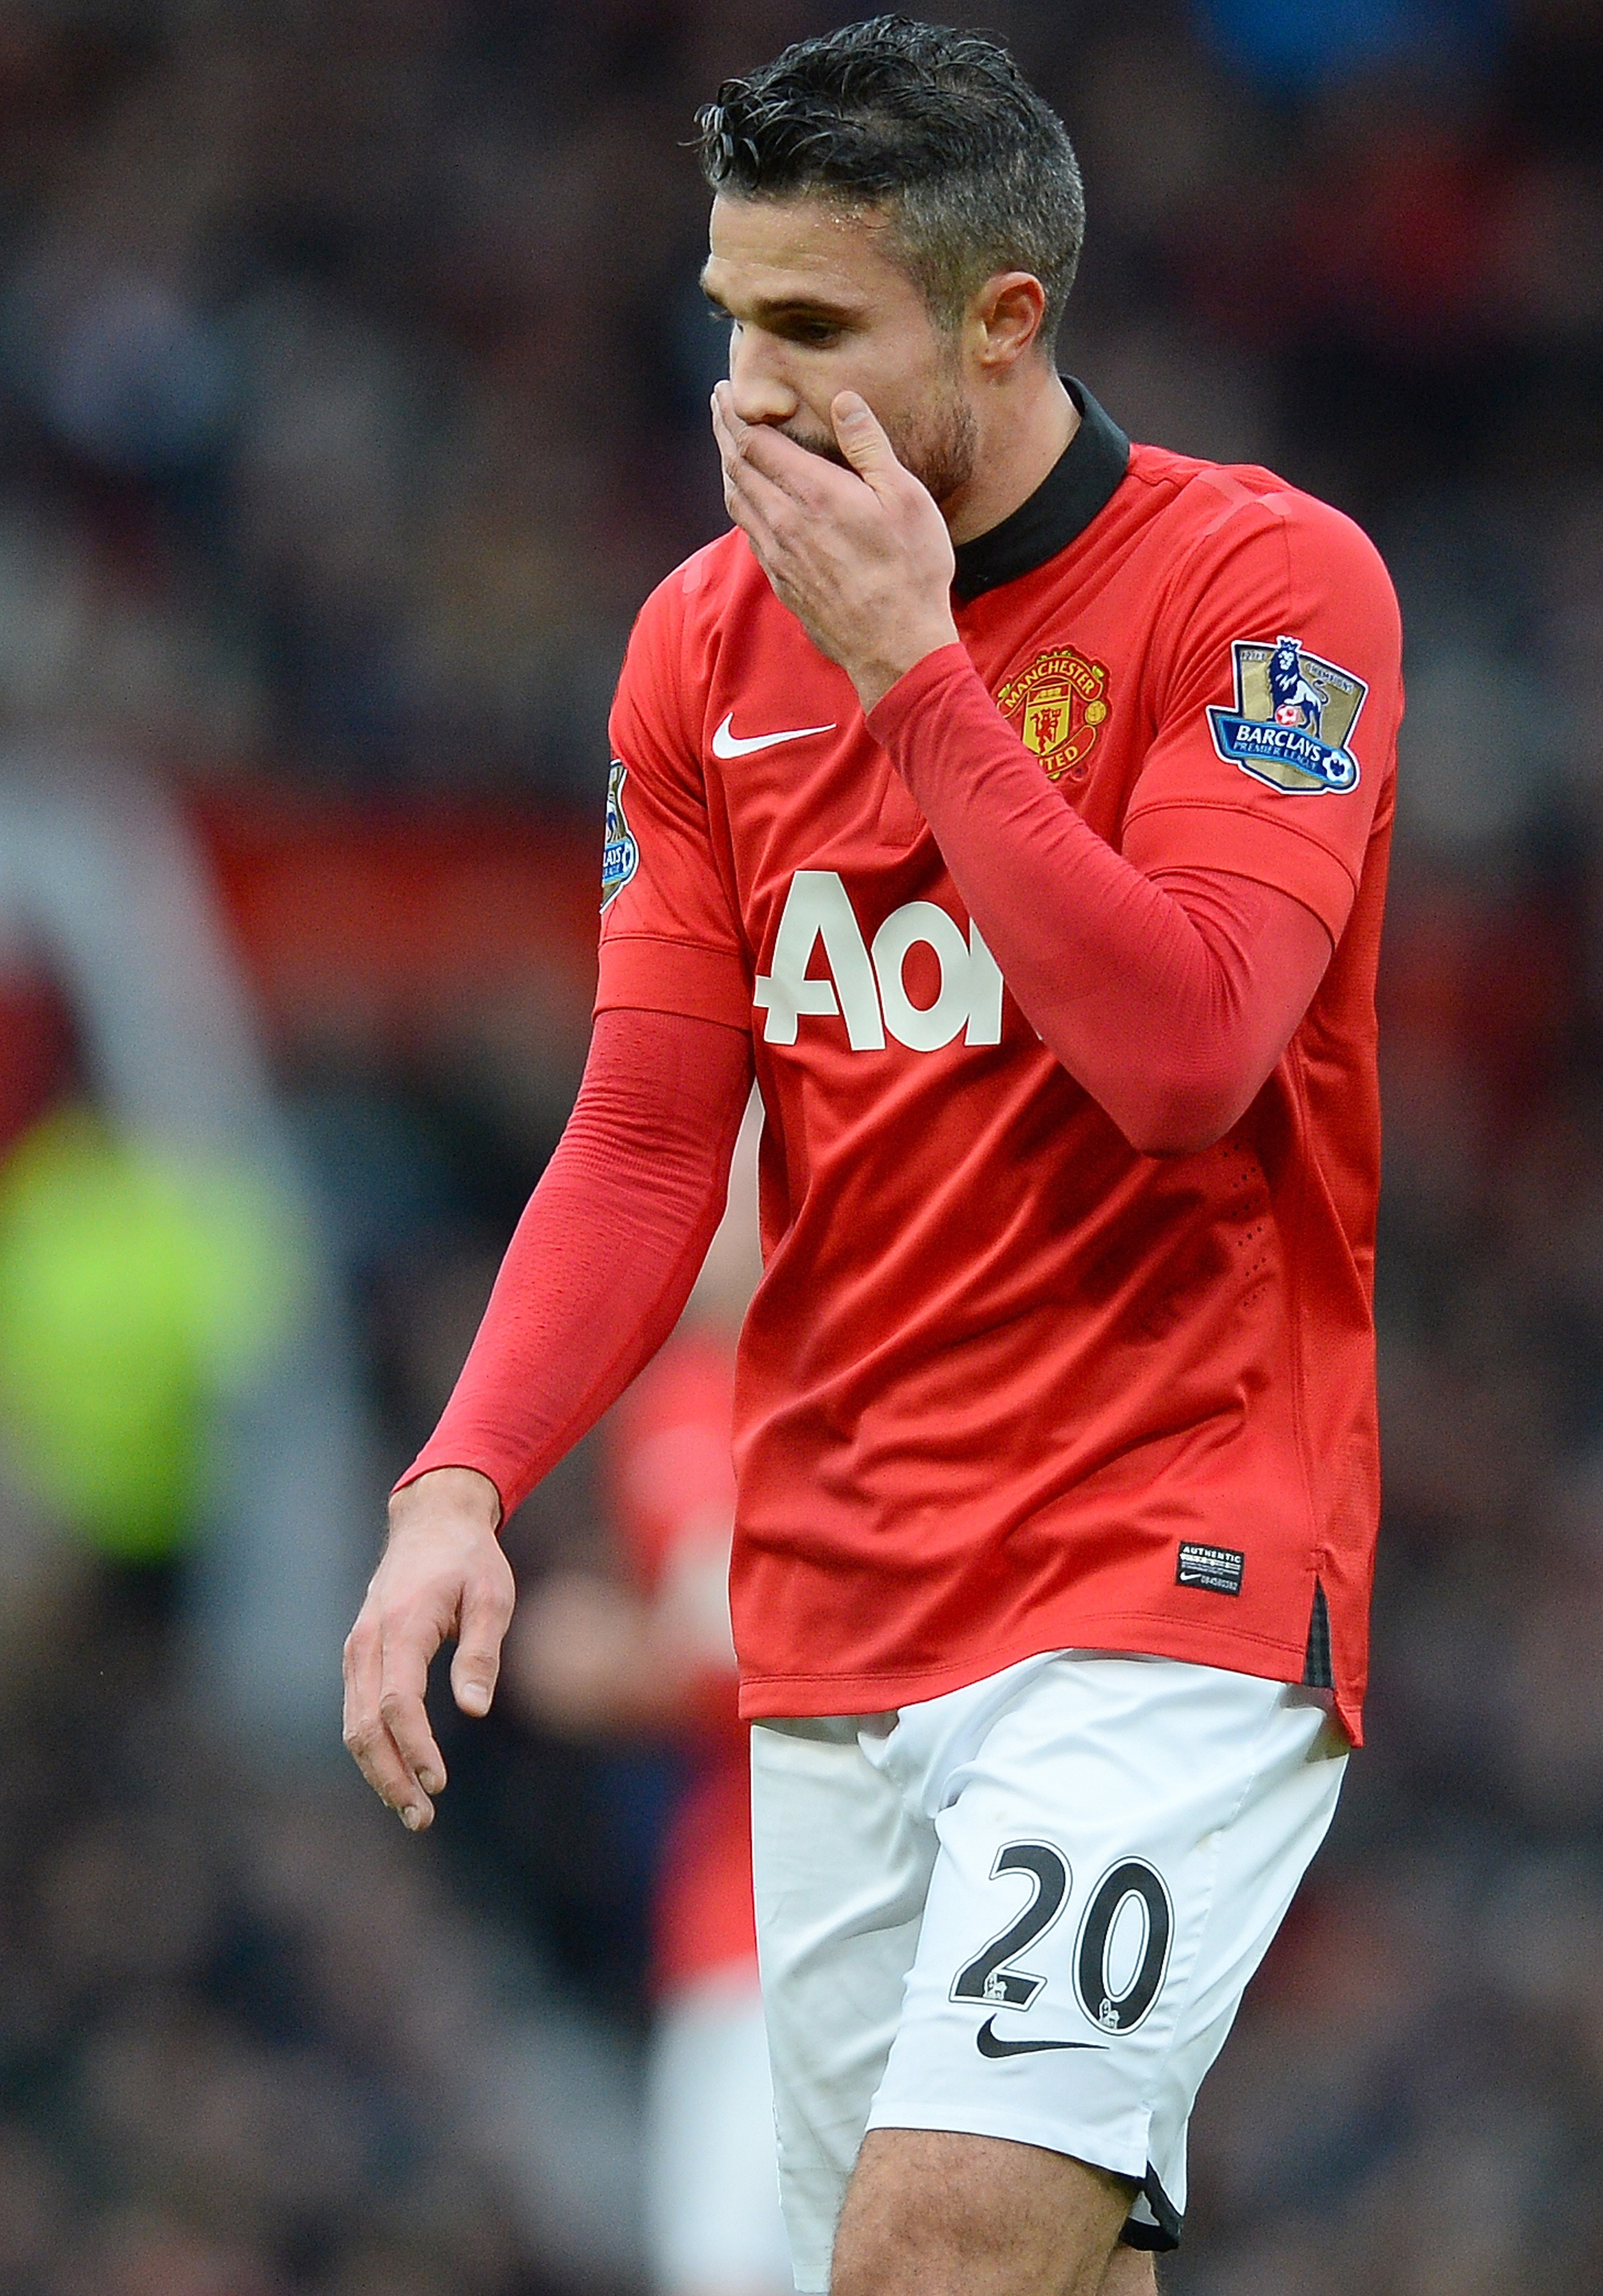 EPL: Manchester United suffer historic loss to Newcastle, Chelsea beaten by Stoke